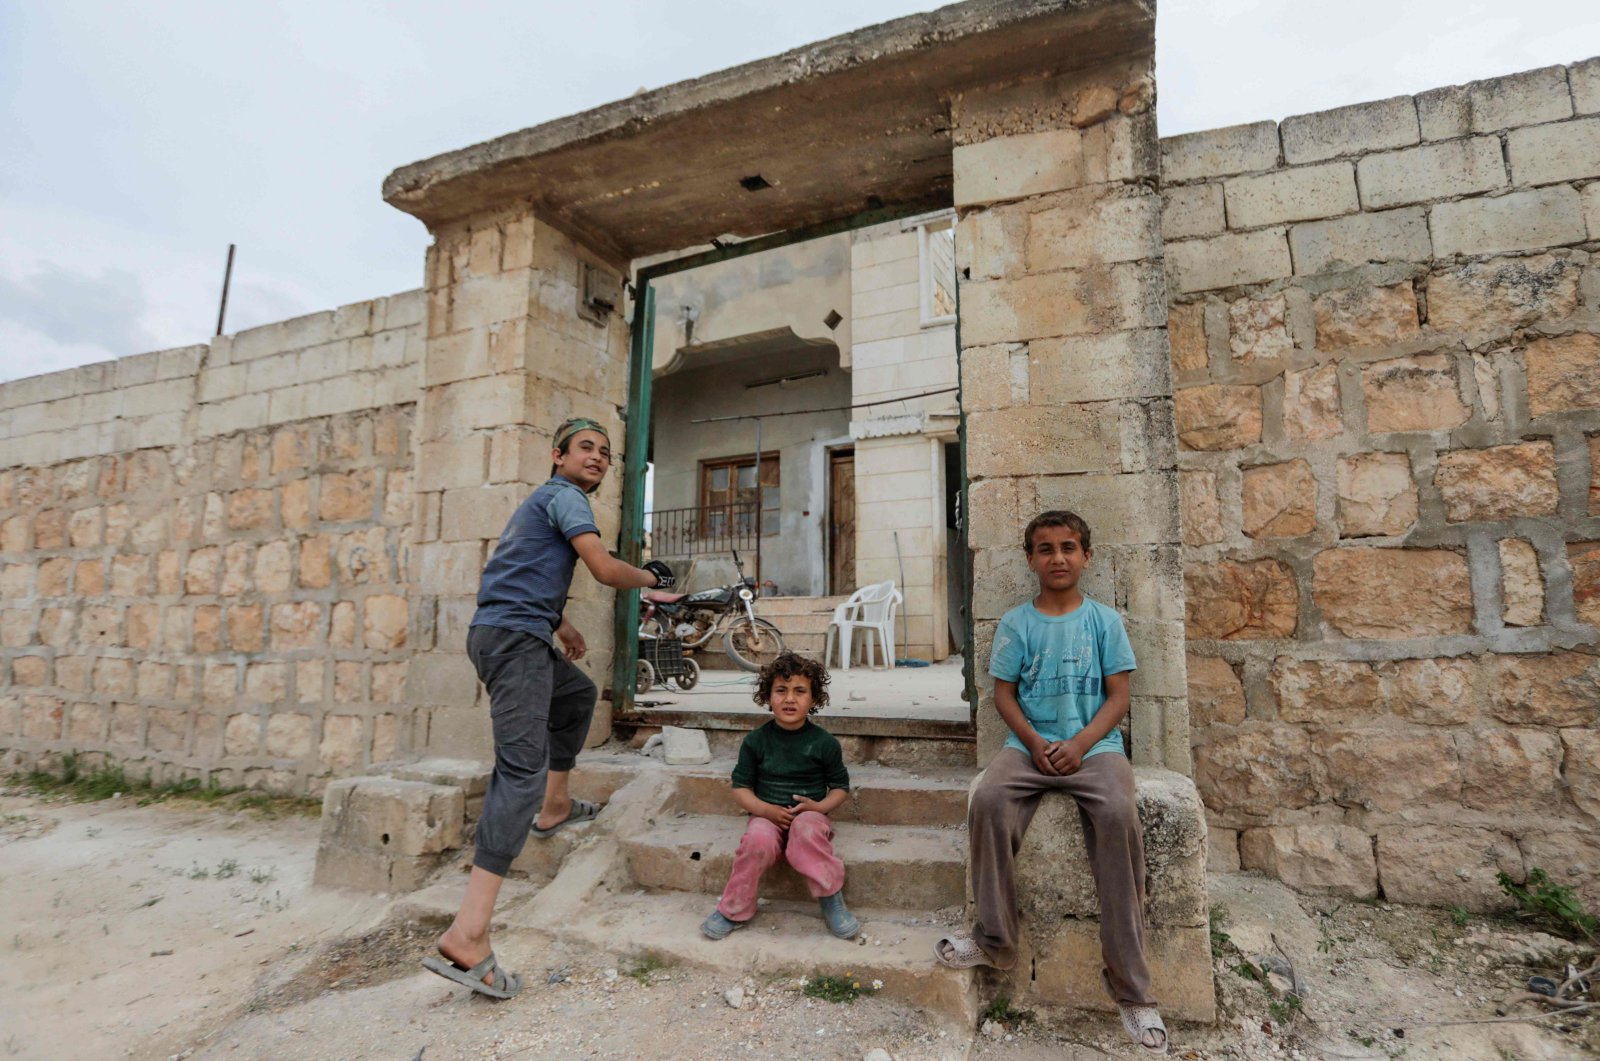 Syrian children whose family decided to return home, rest by the entrance as they clean the rubble from their house's yard in al-Nayrab, a village ravaged by regime forces bombardment near the M4 strategic highway, in Syria's northwestern Idlib province, May 3, 2020. (AFP Photo)